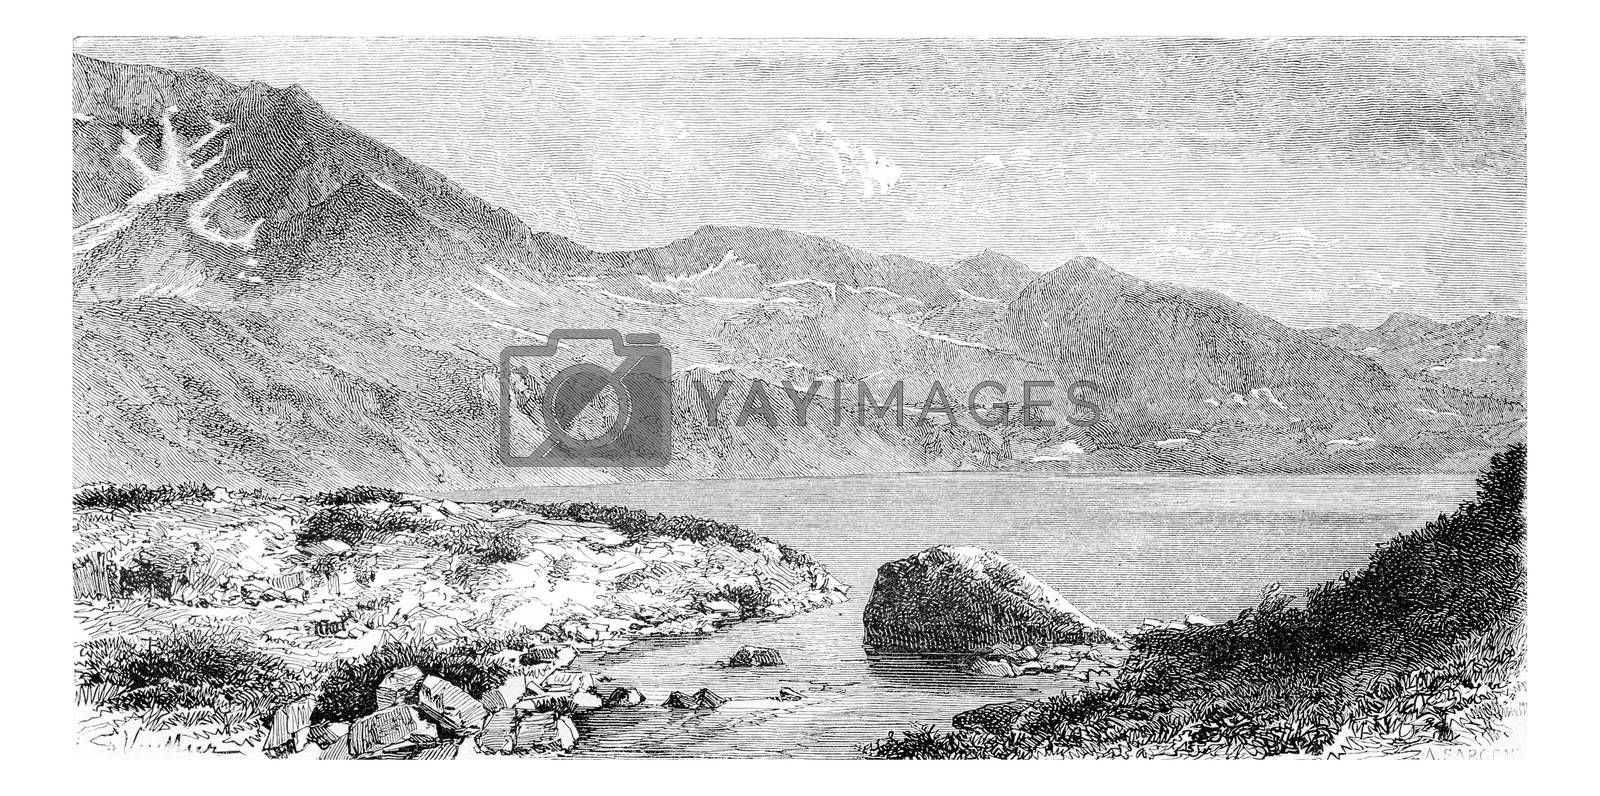 Lake Wielki Staw in the Valley of the Five Lakes, in Krkonose Mountains, Poland, drawing by G. Vuillier from a photograph, vintage engraved illustration. Le Tour du Monde, Travel Journal, 1881